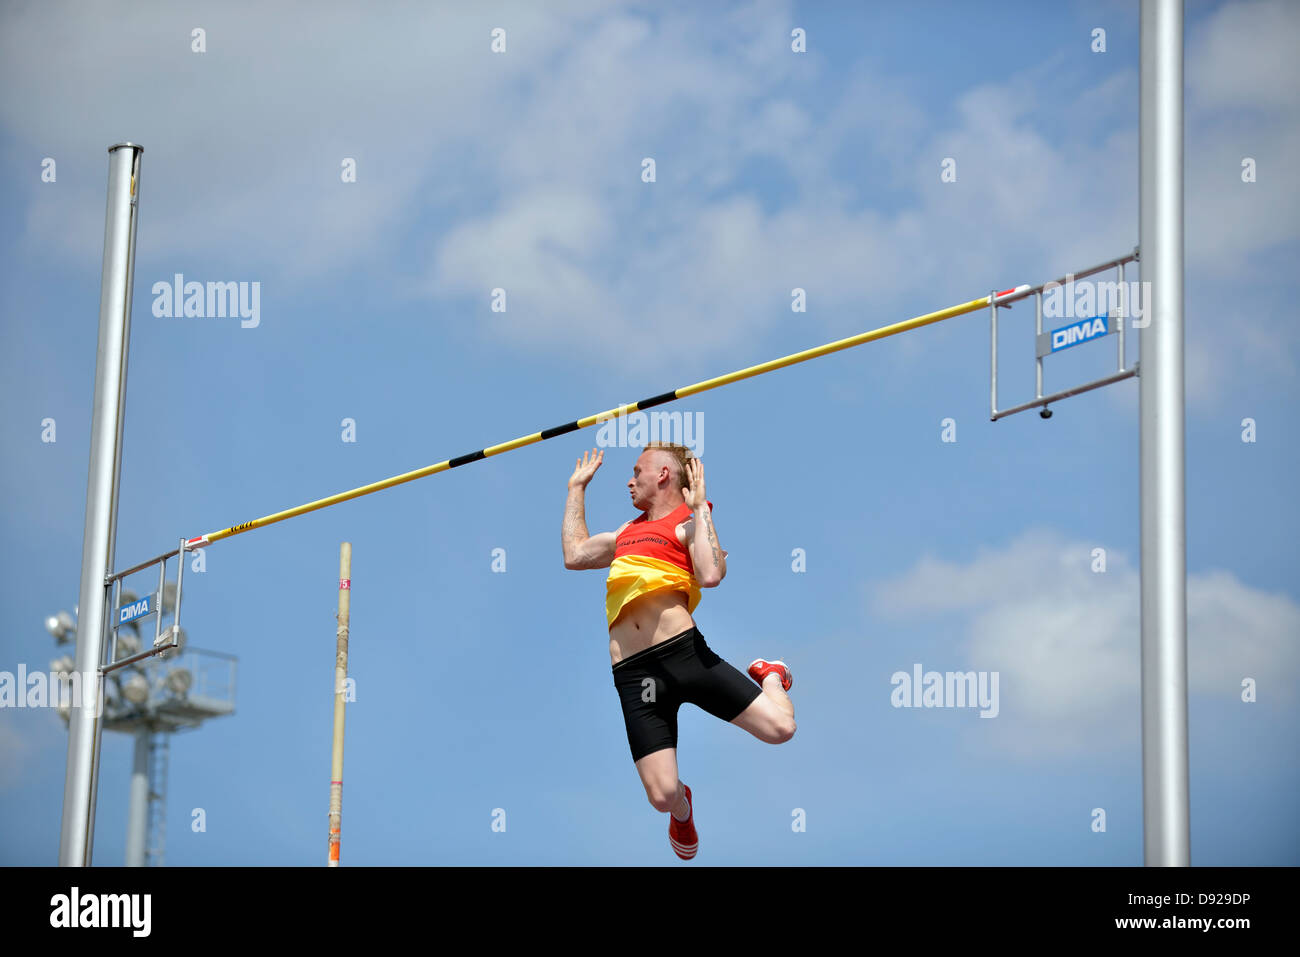 pole vaulter clears the bar at british athletics premiership meeting, sportcity, manchester - Stock Image